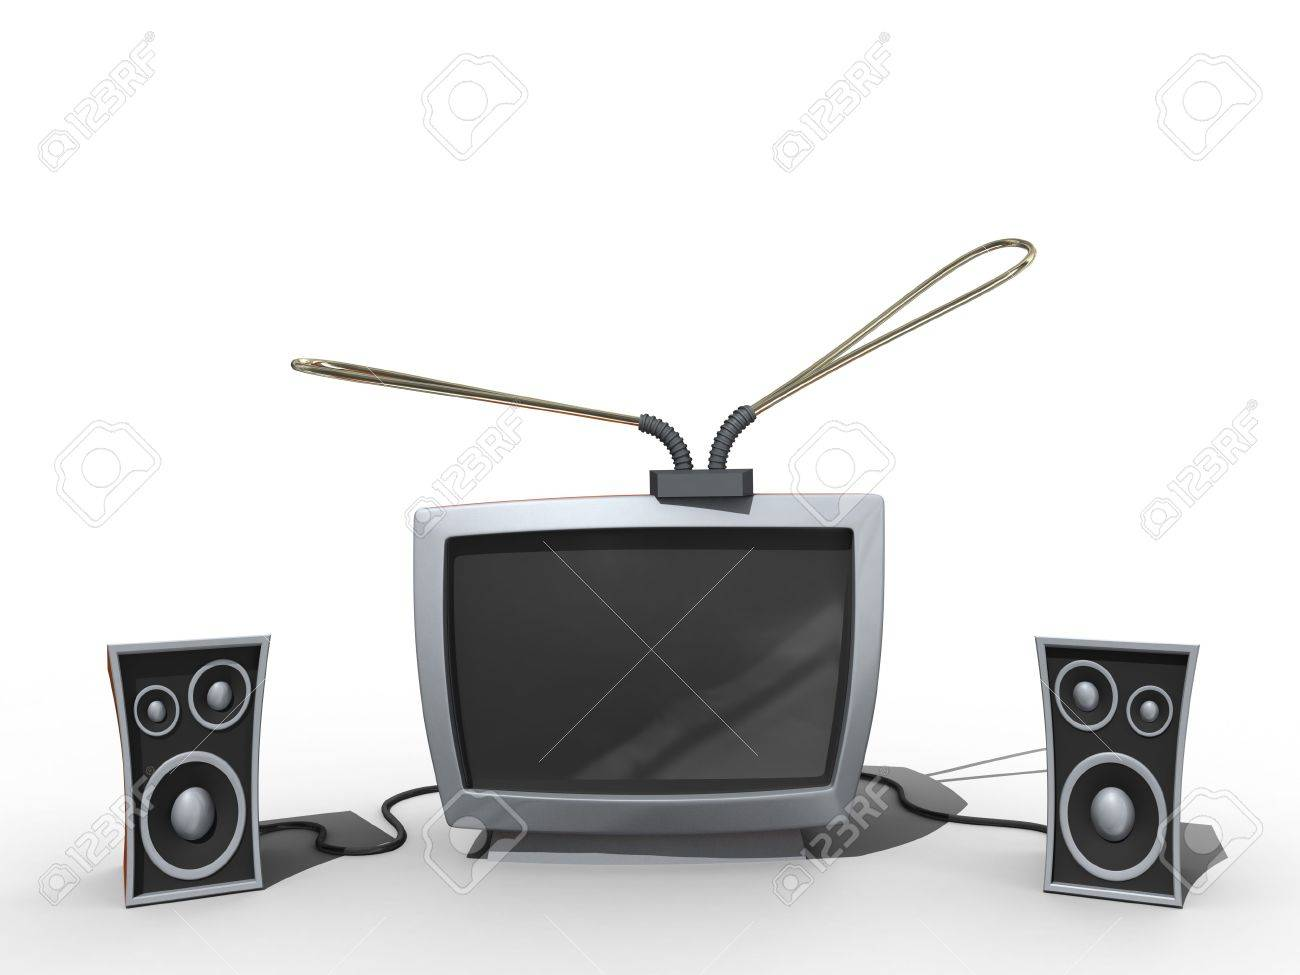 Old tv with speakers in cartoon style. Isolated. Stock Photo - 3667378